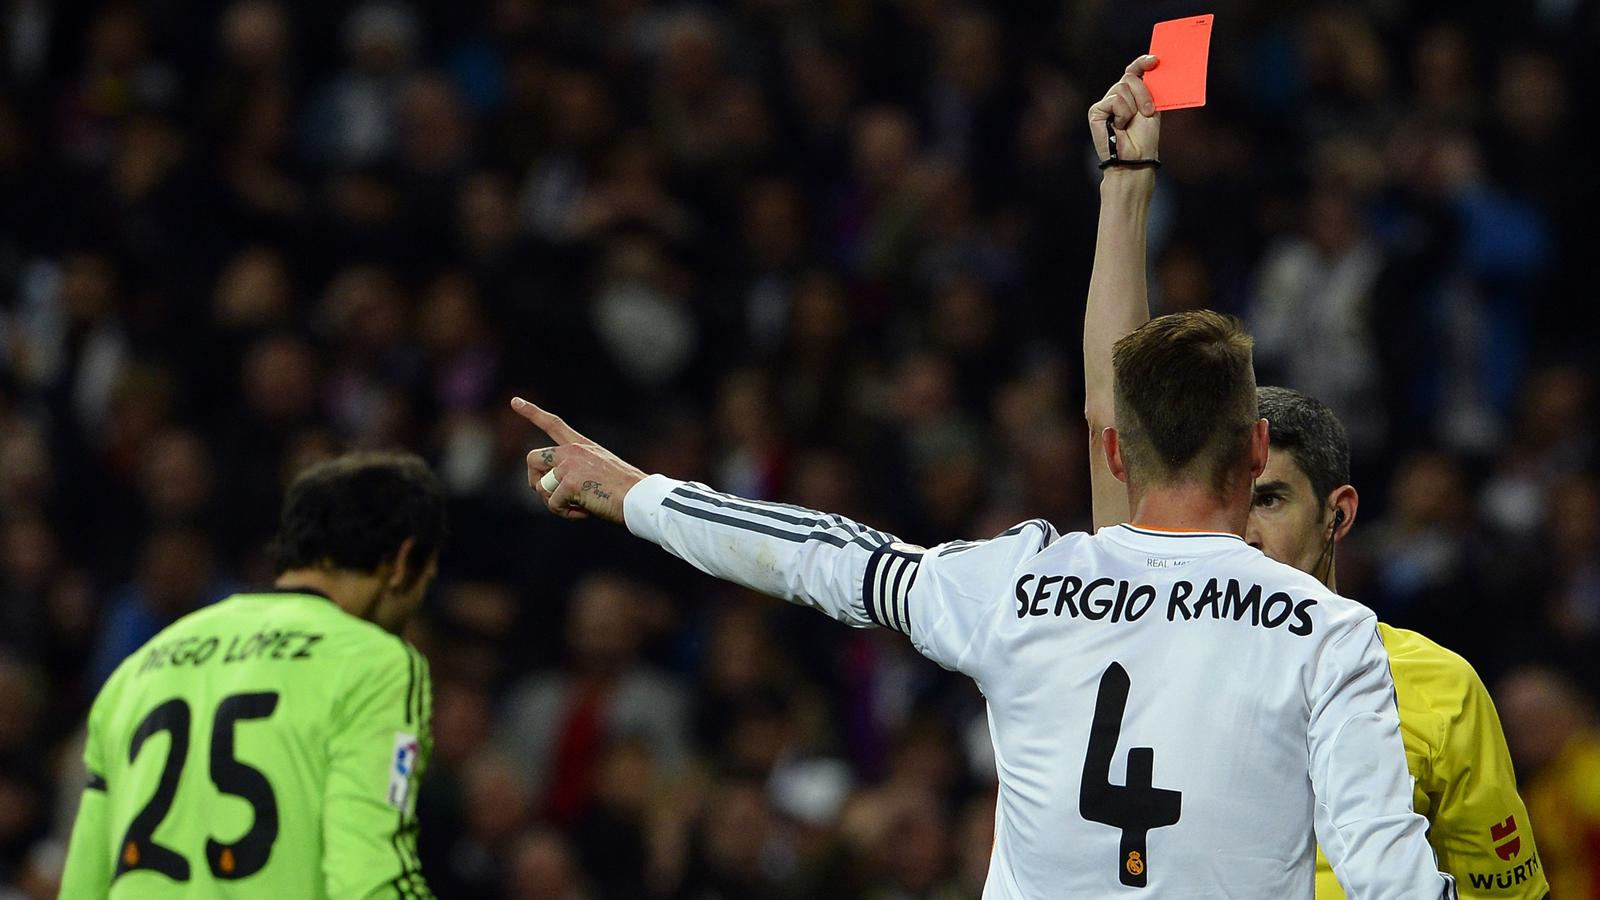 Sergio Ramos gets red card in the game of Real and Barcelona